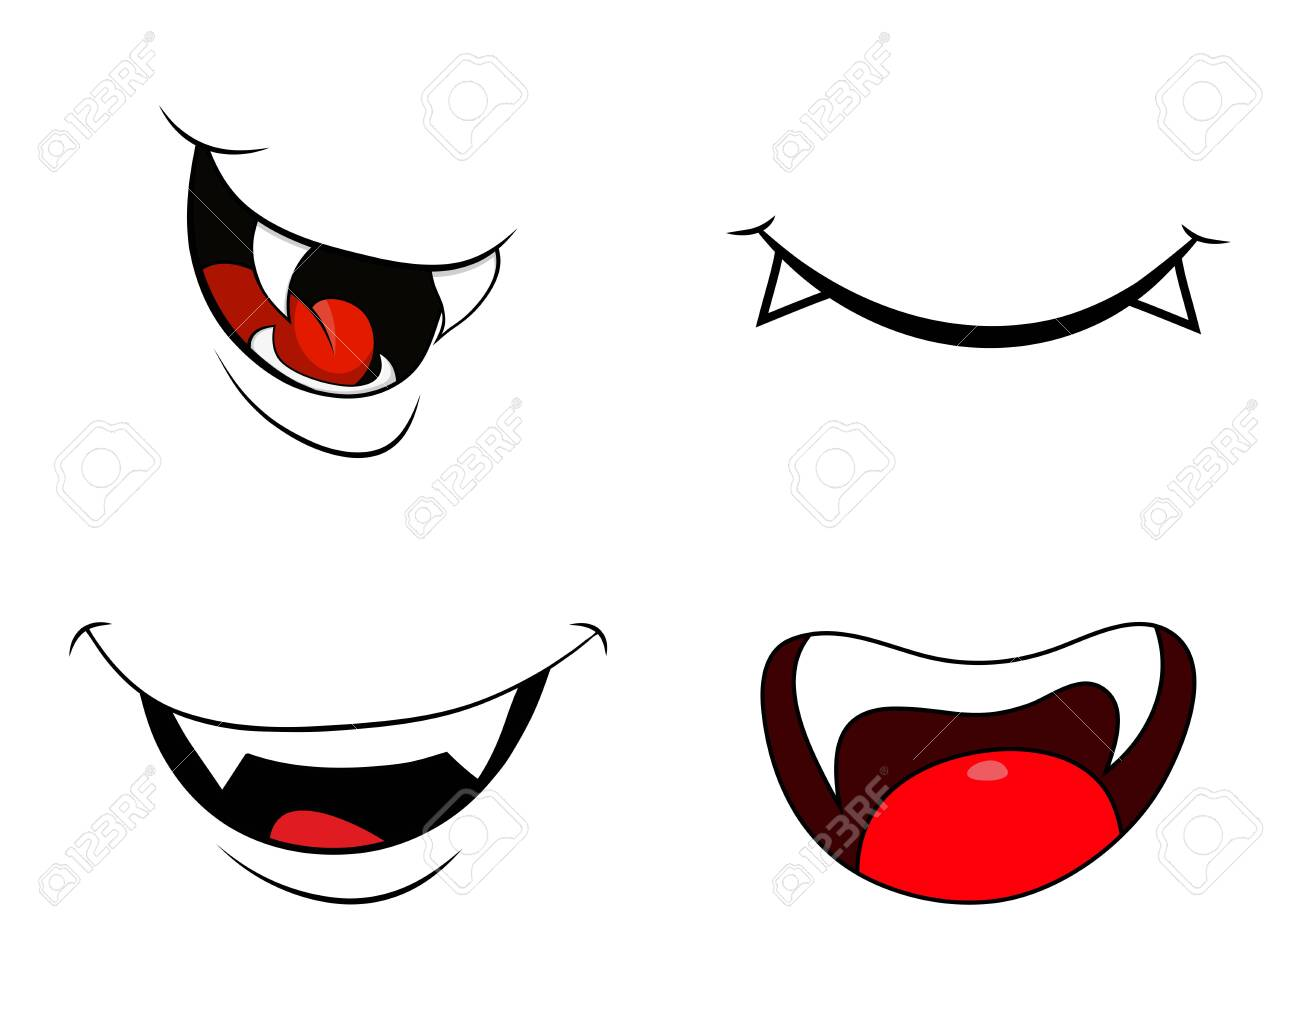 vampire mouth fang smile set isolated on white background - 131424320